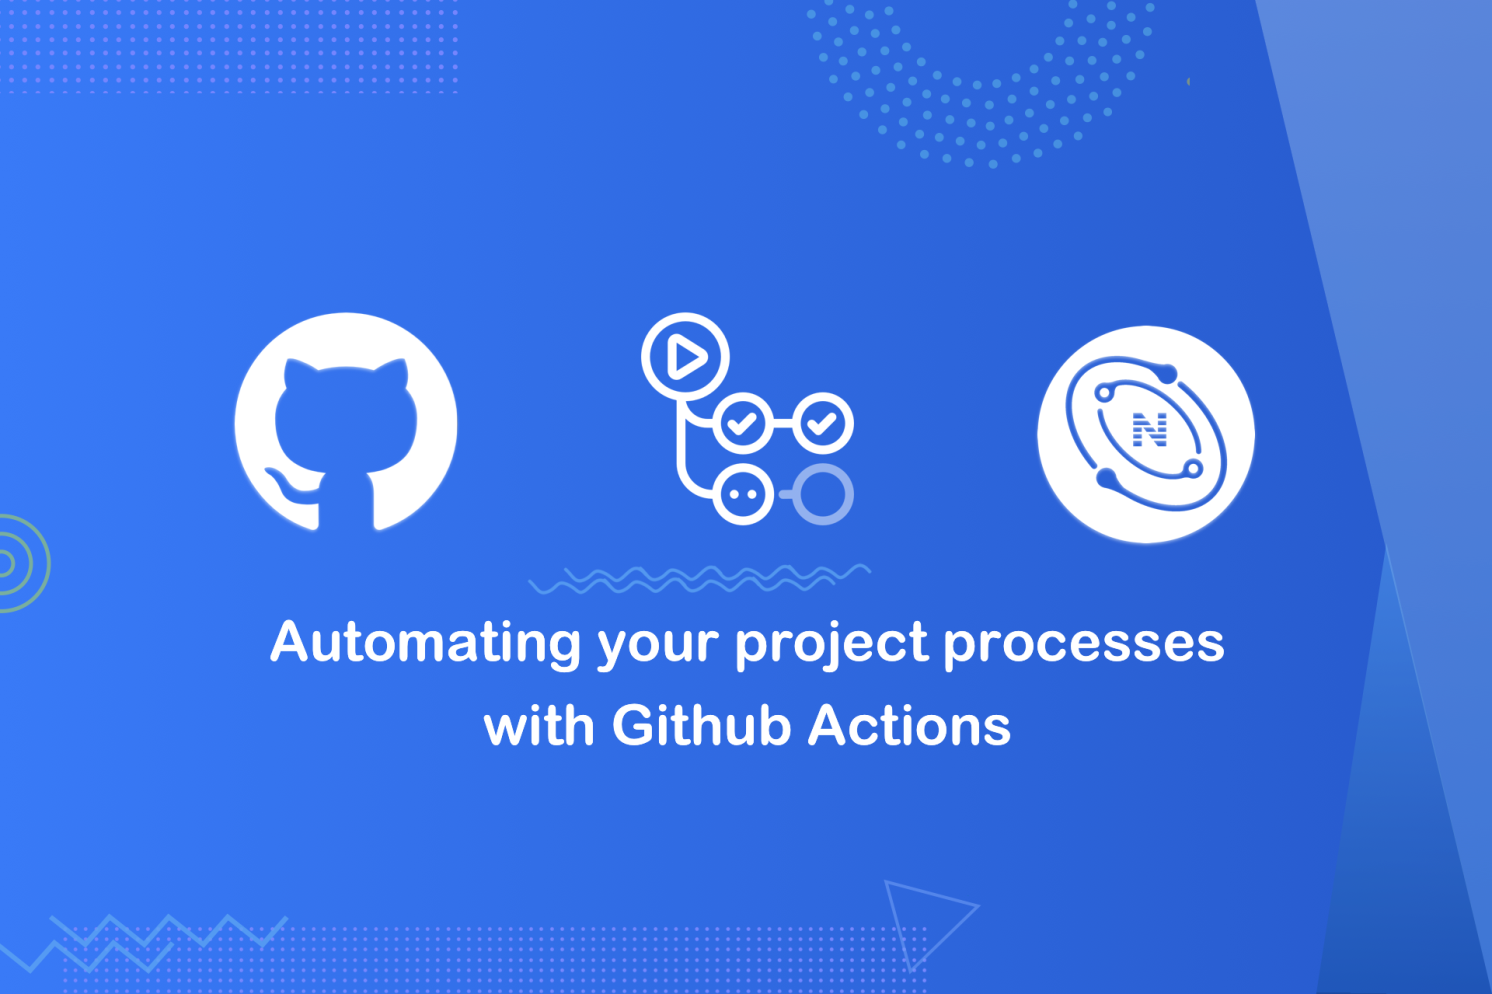 Automating Your Project Processes with Github Actions